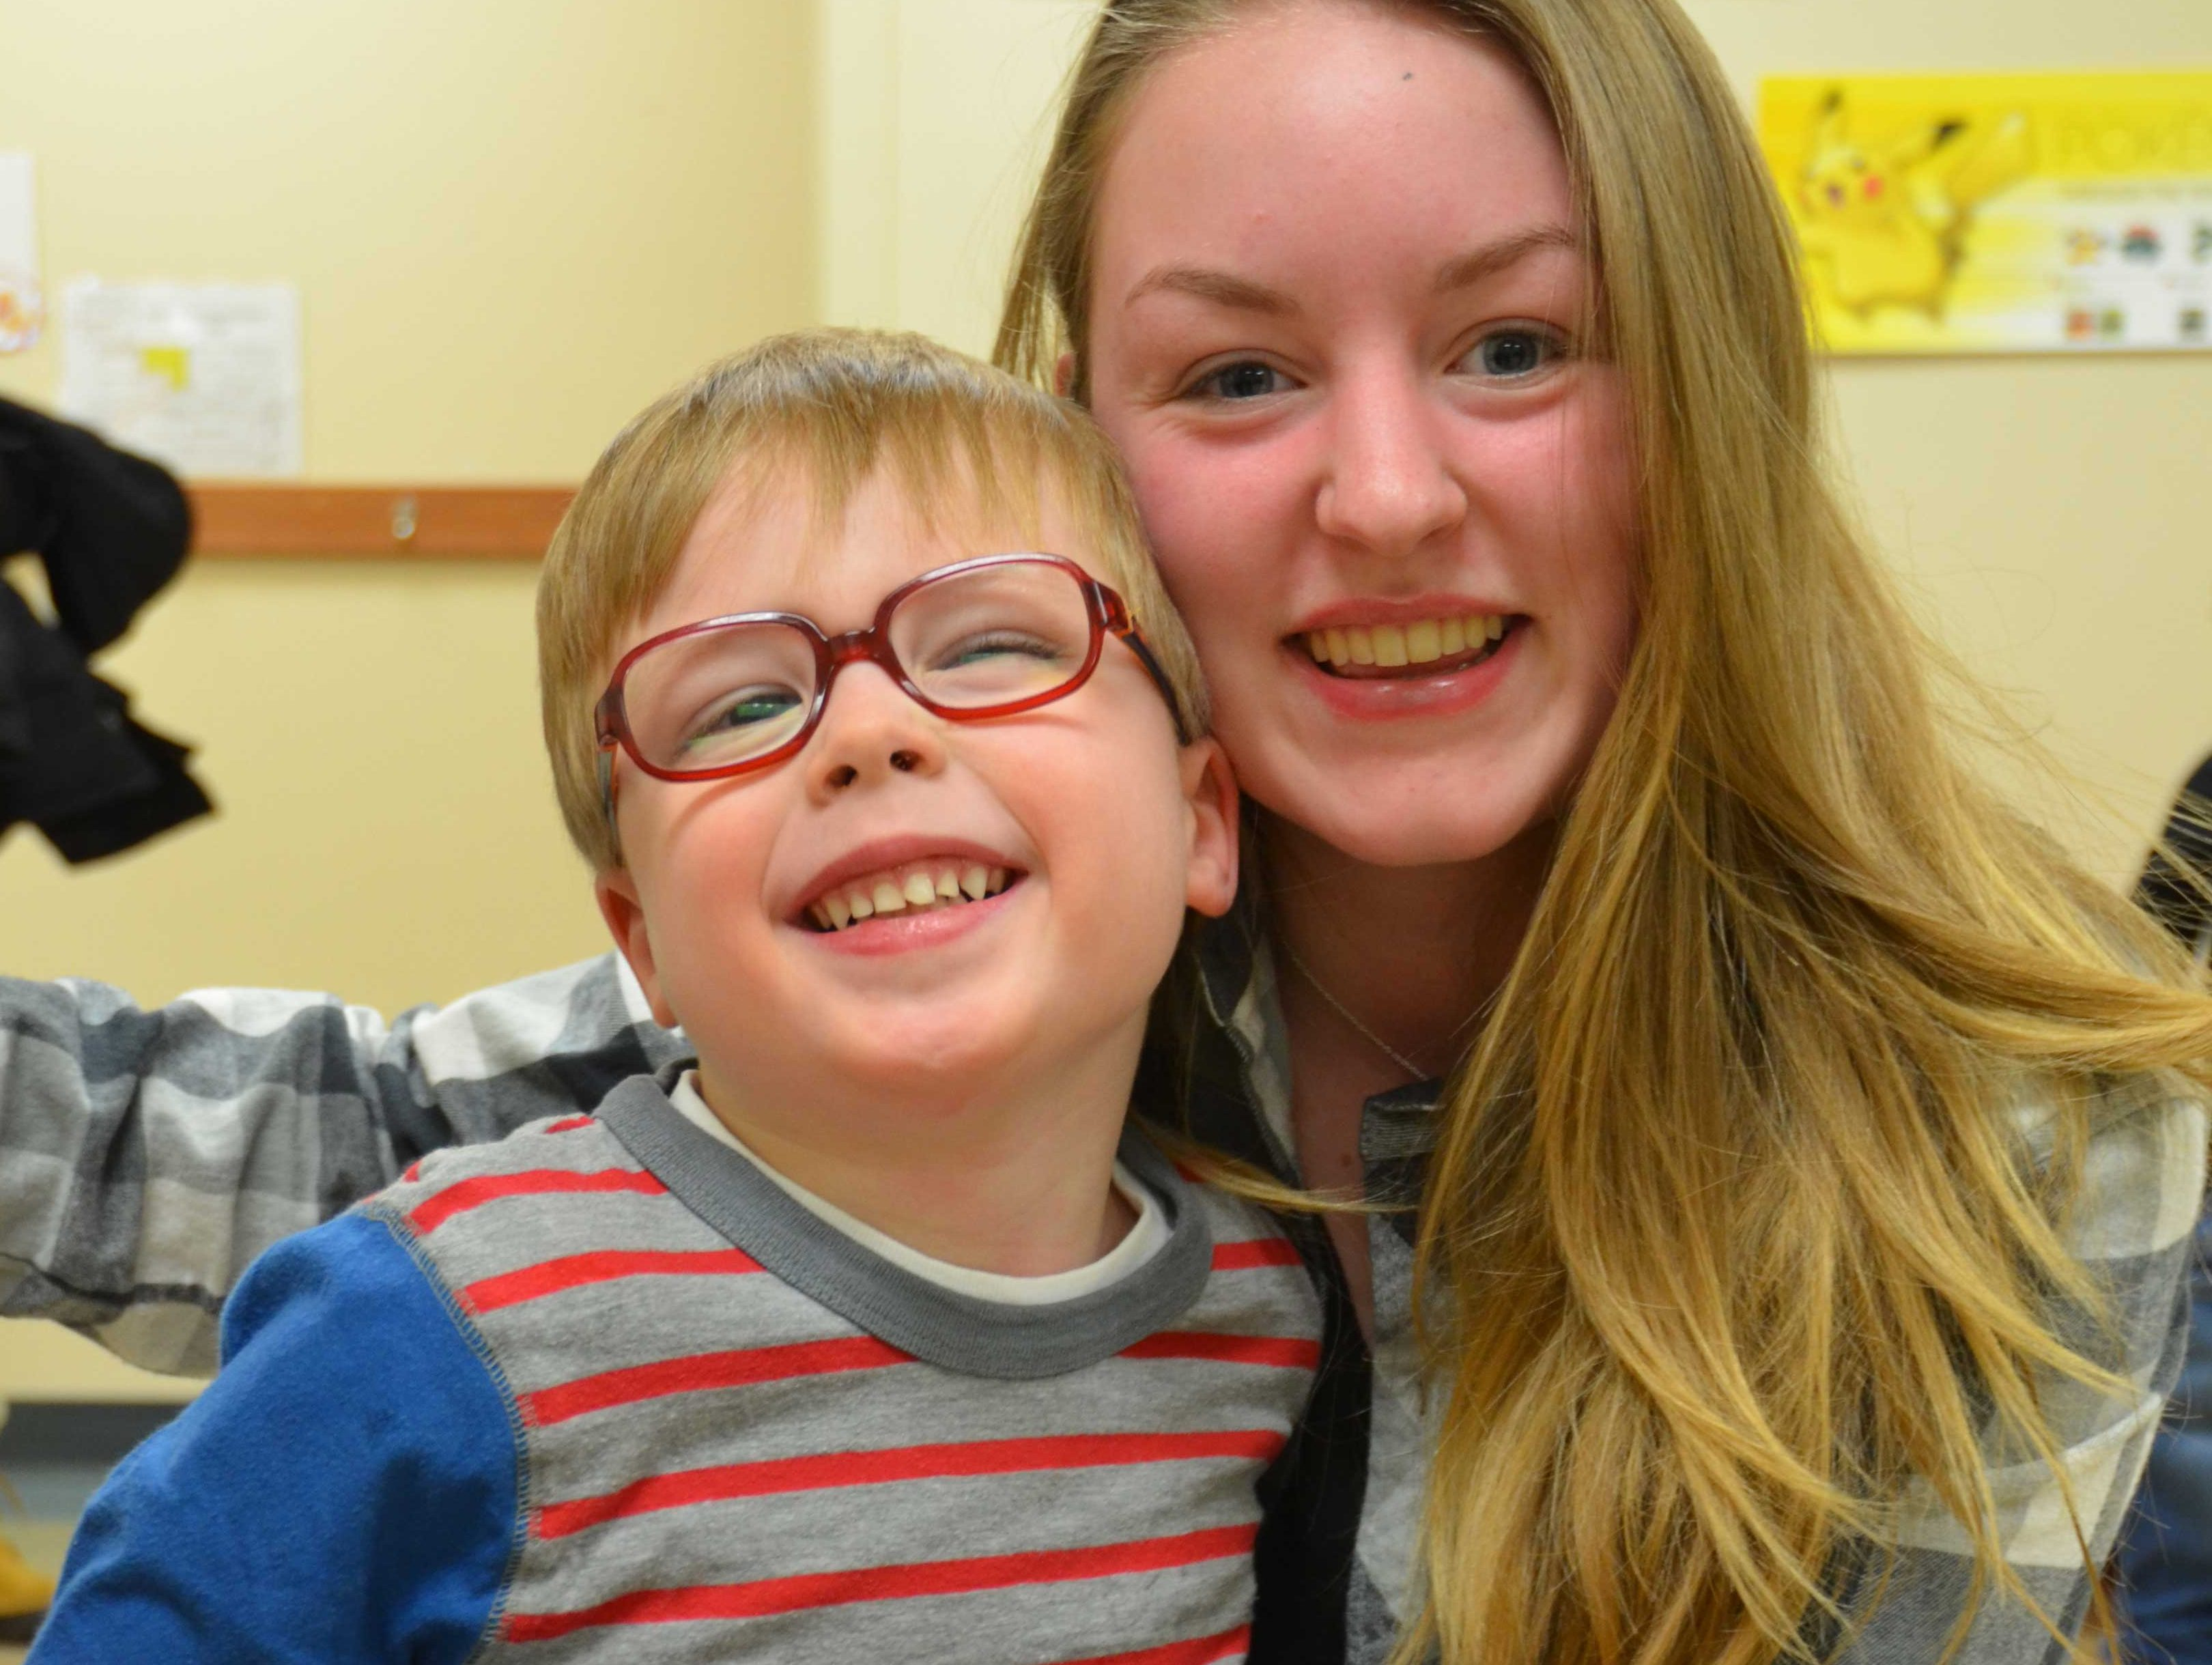 young-woman-and-boy-with-red-glasses